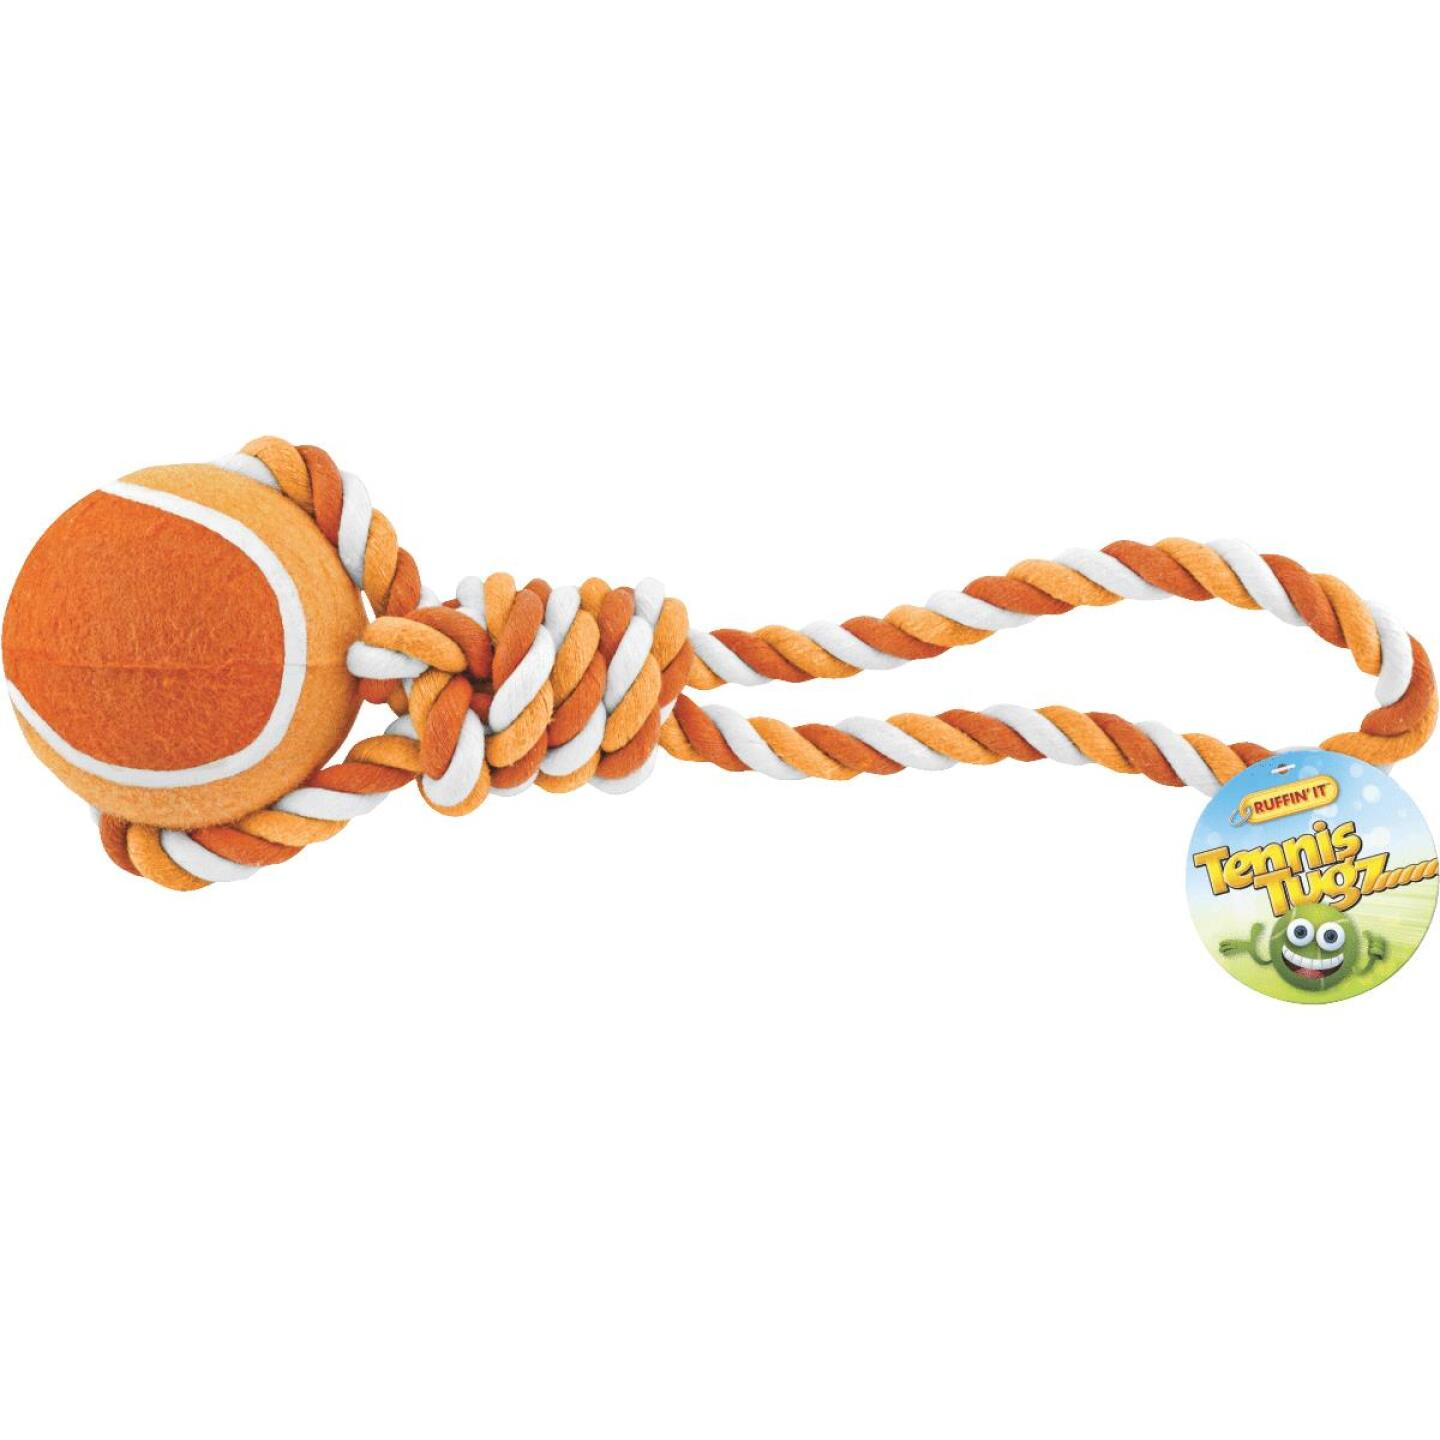 Westminster Pet Ruffin' it Giant Tennis Ball Rope Tug Dog Toy Image 2